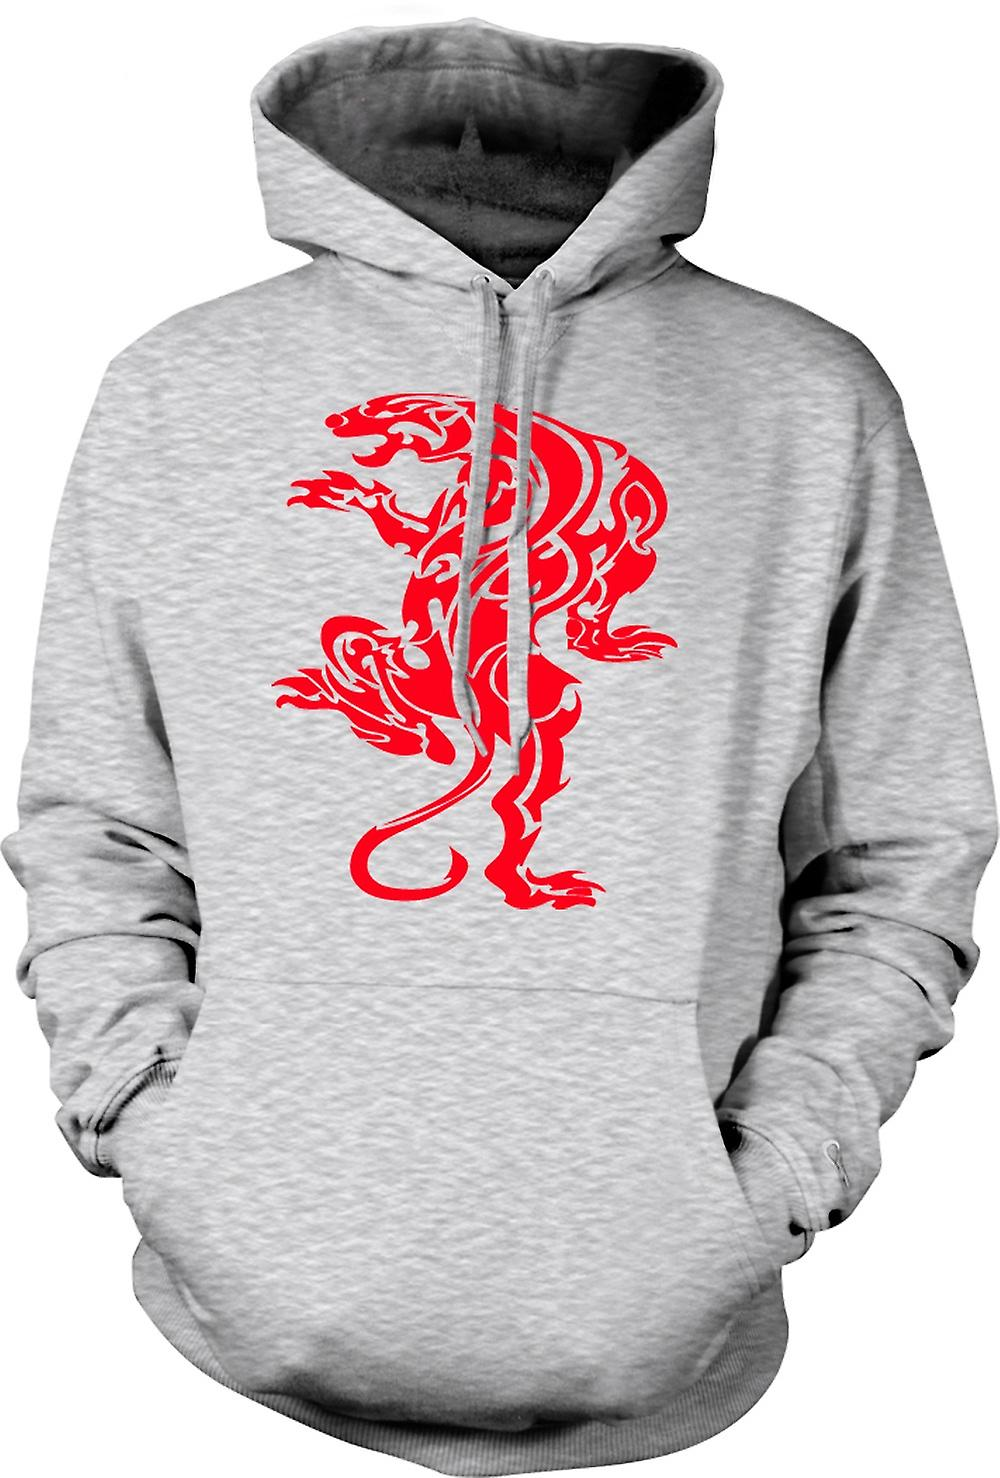 Mens Hoodie - Tiger Tribal Art Design